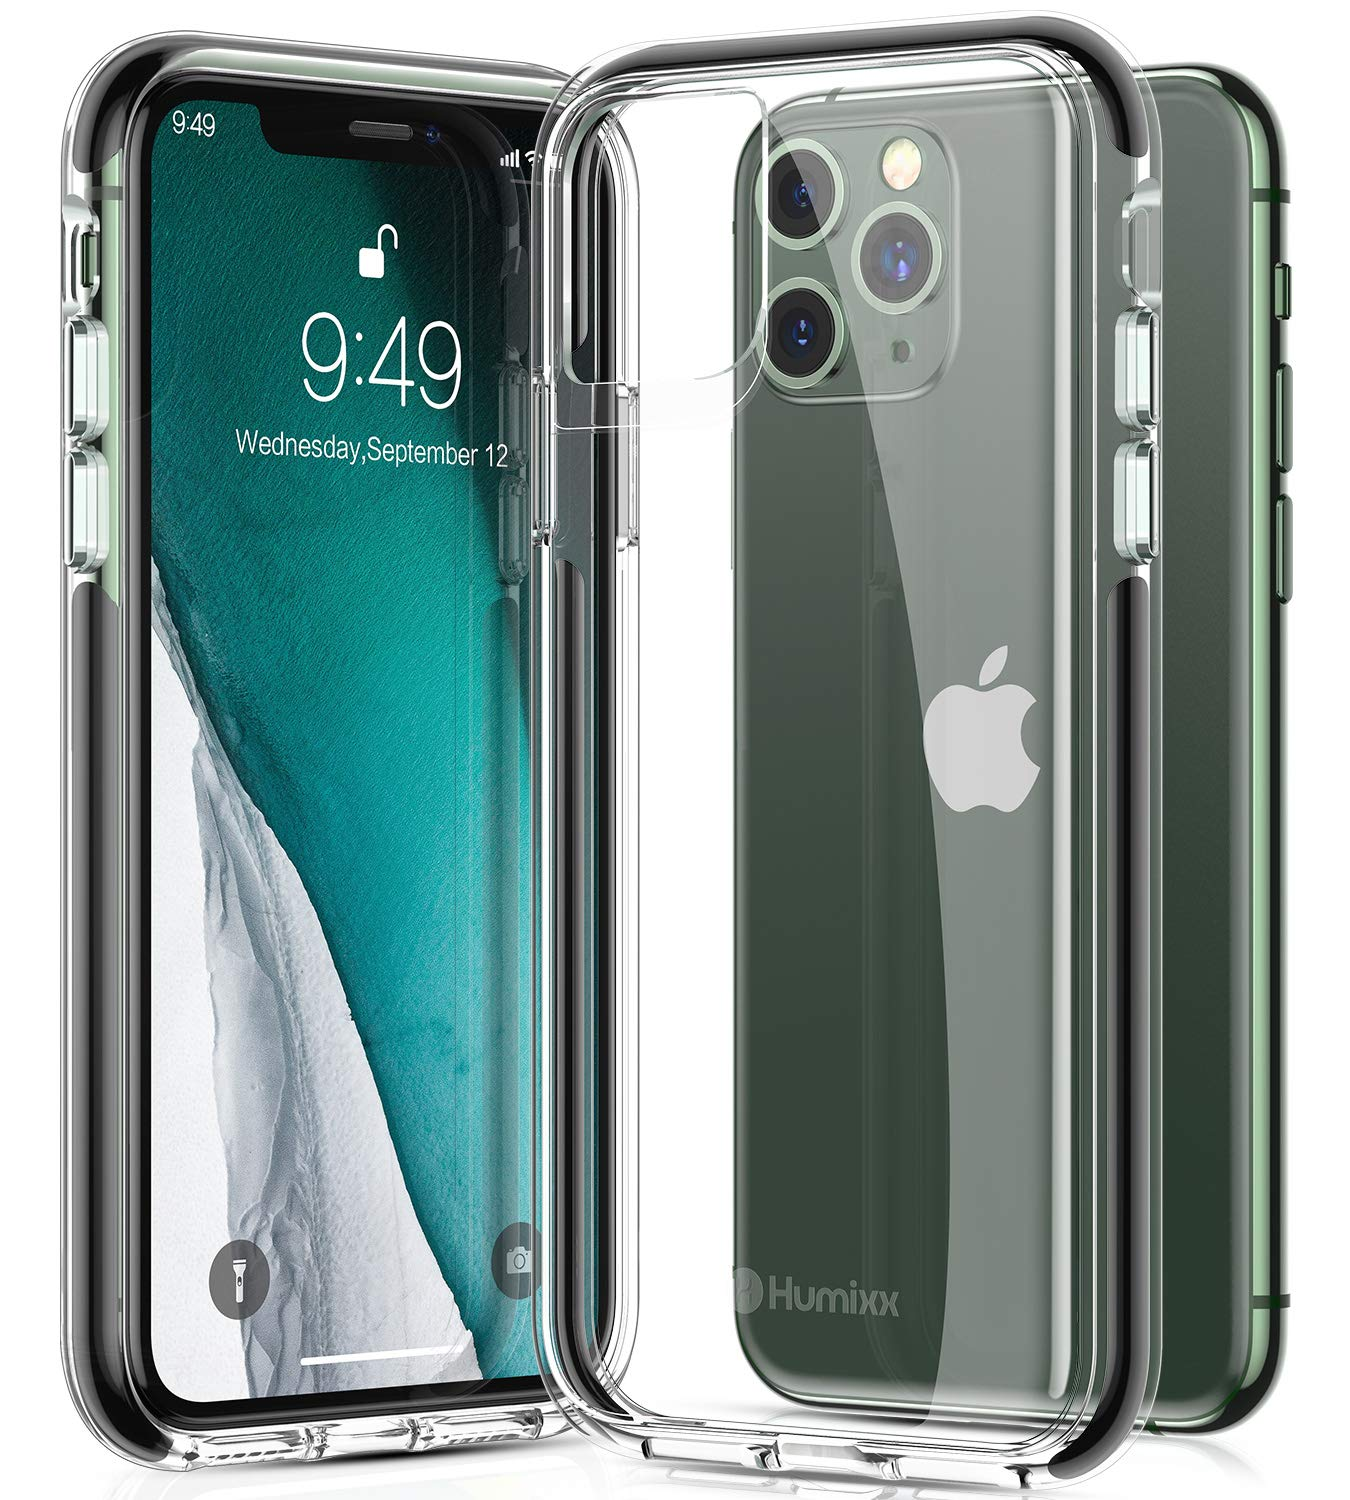 humixx Stronghold Series Clear iPhone 11 Pro Case [10FT Military Grade Drop Tested] [Protected by PloyOne] Shockproof Case Cover Designed for iPhone 11 Pro (NOT 11 OR 11 Pro Max)